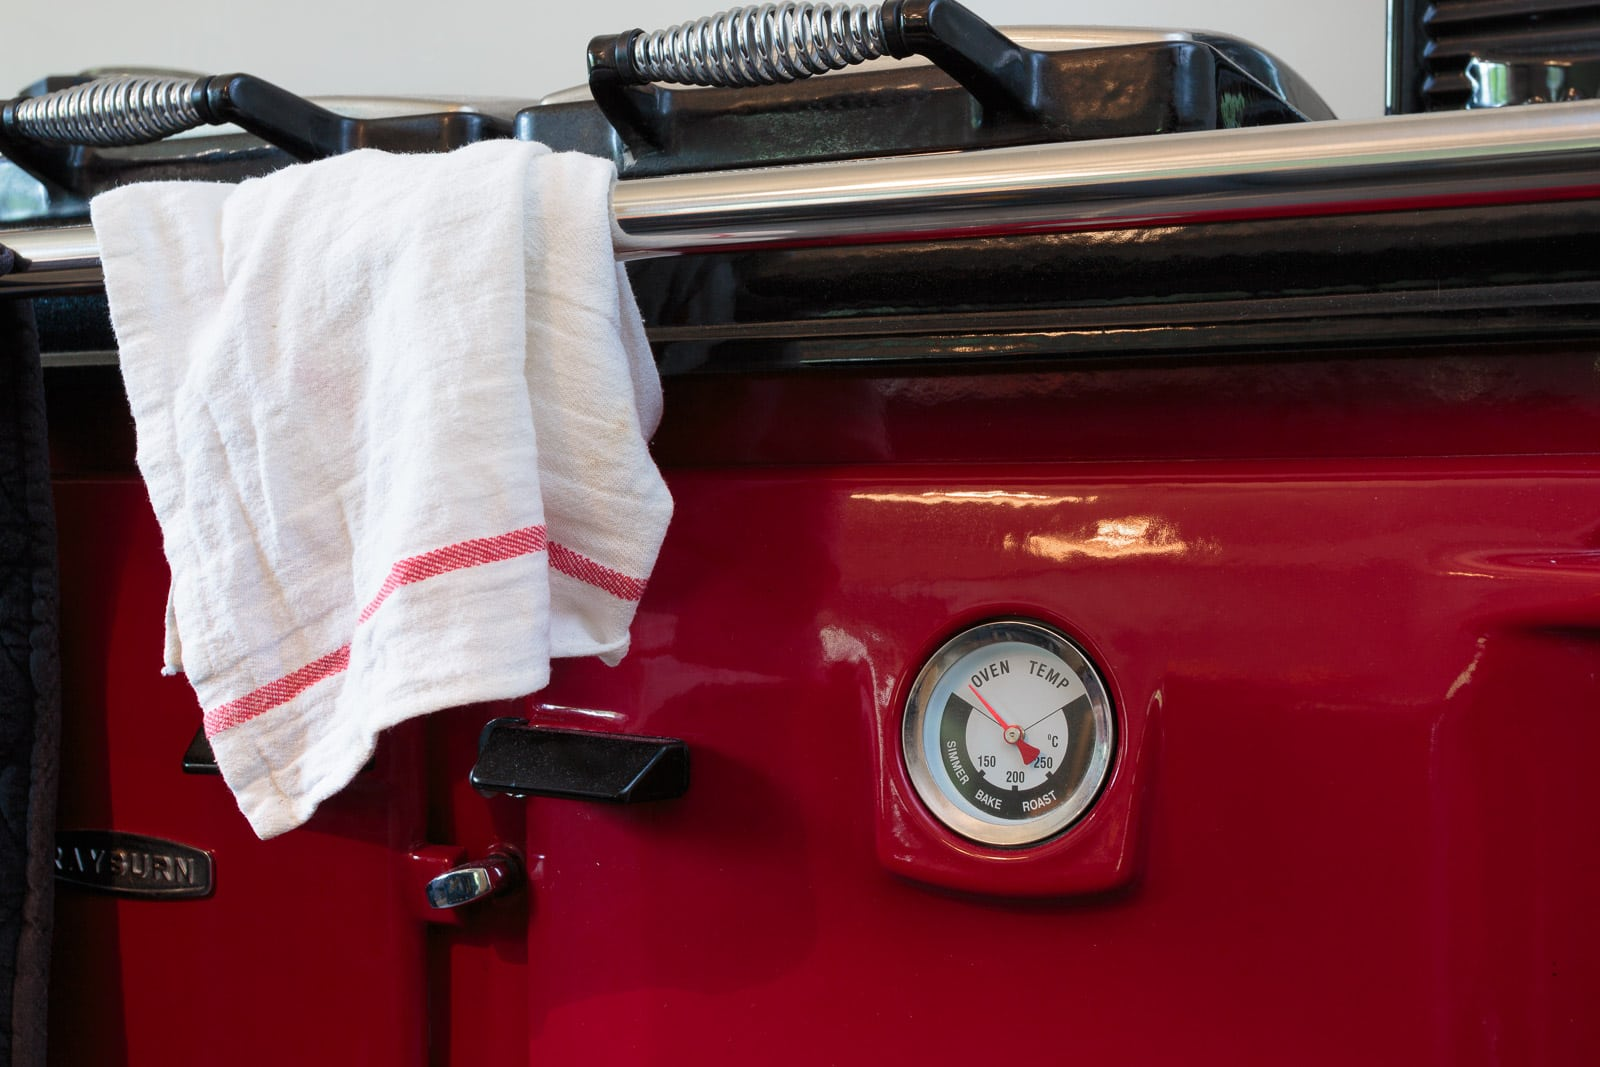 Close up of bright red aga cooker featuring analogue oven temperature dial